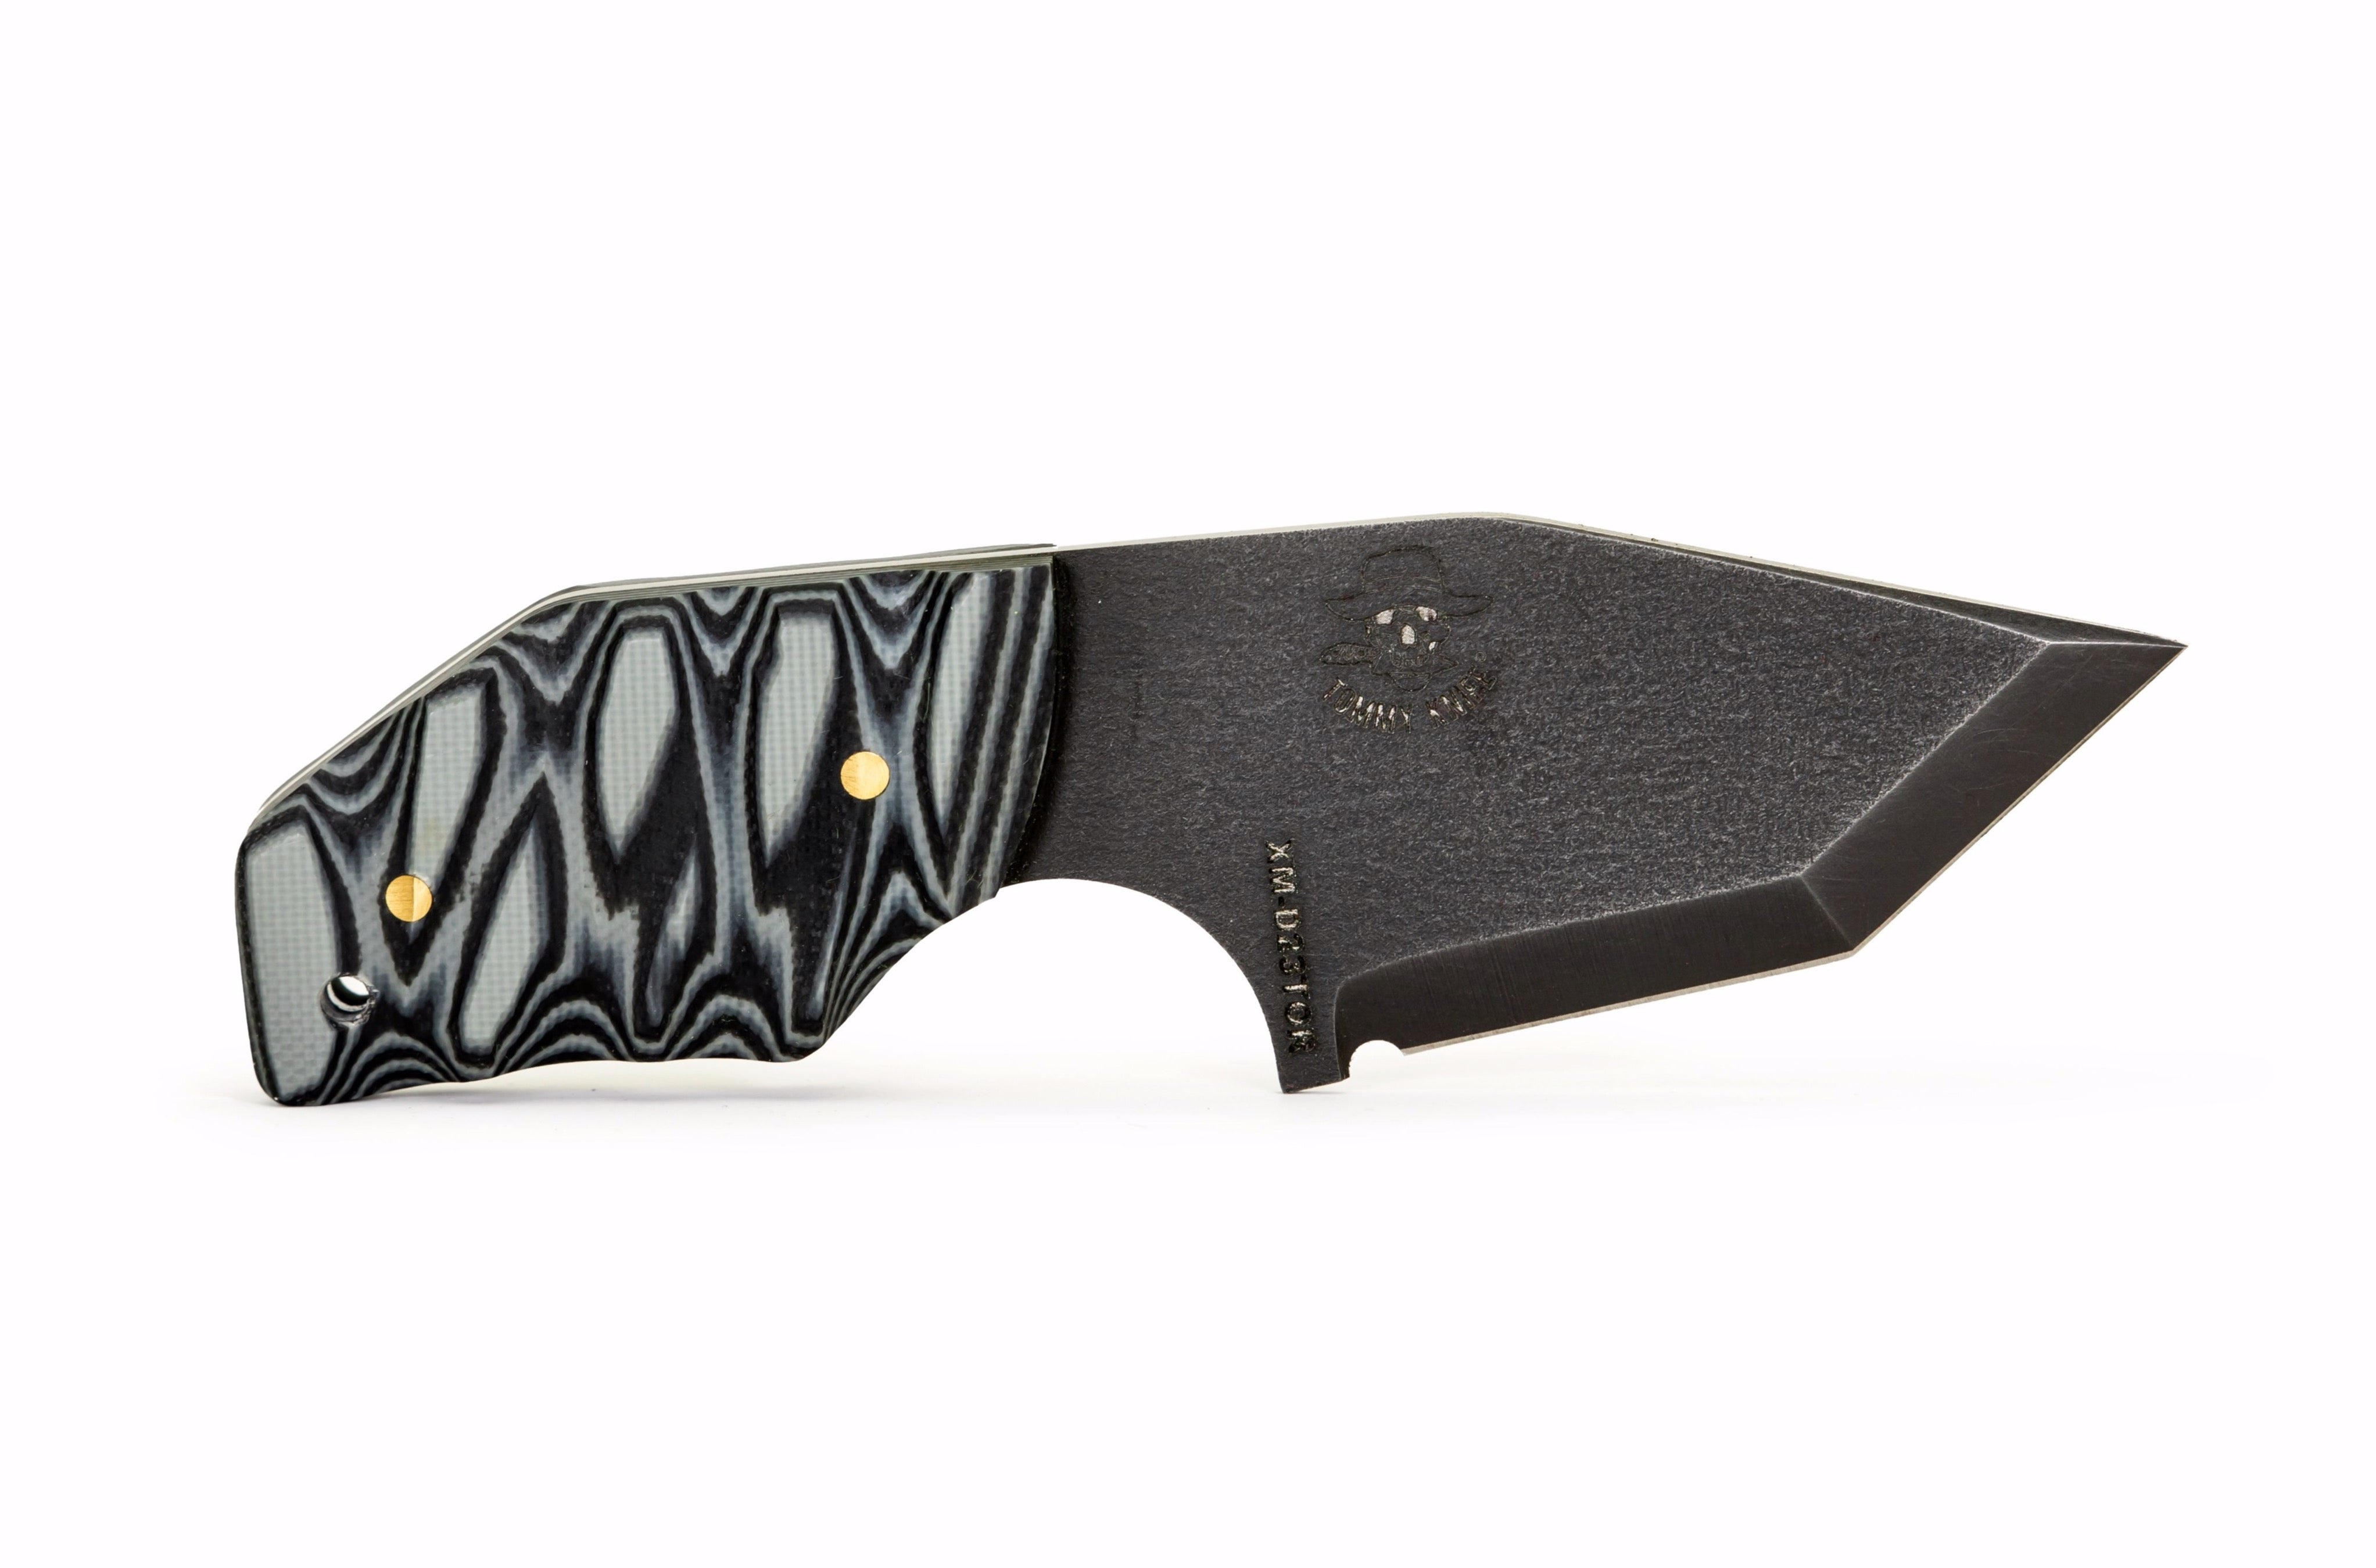 Tommy Knife® Delta with Layered G10 Caveman Grip - Right Grind